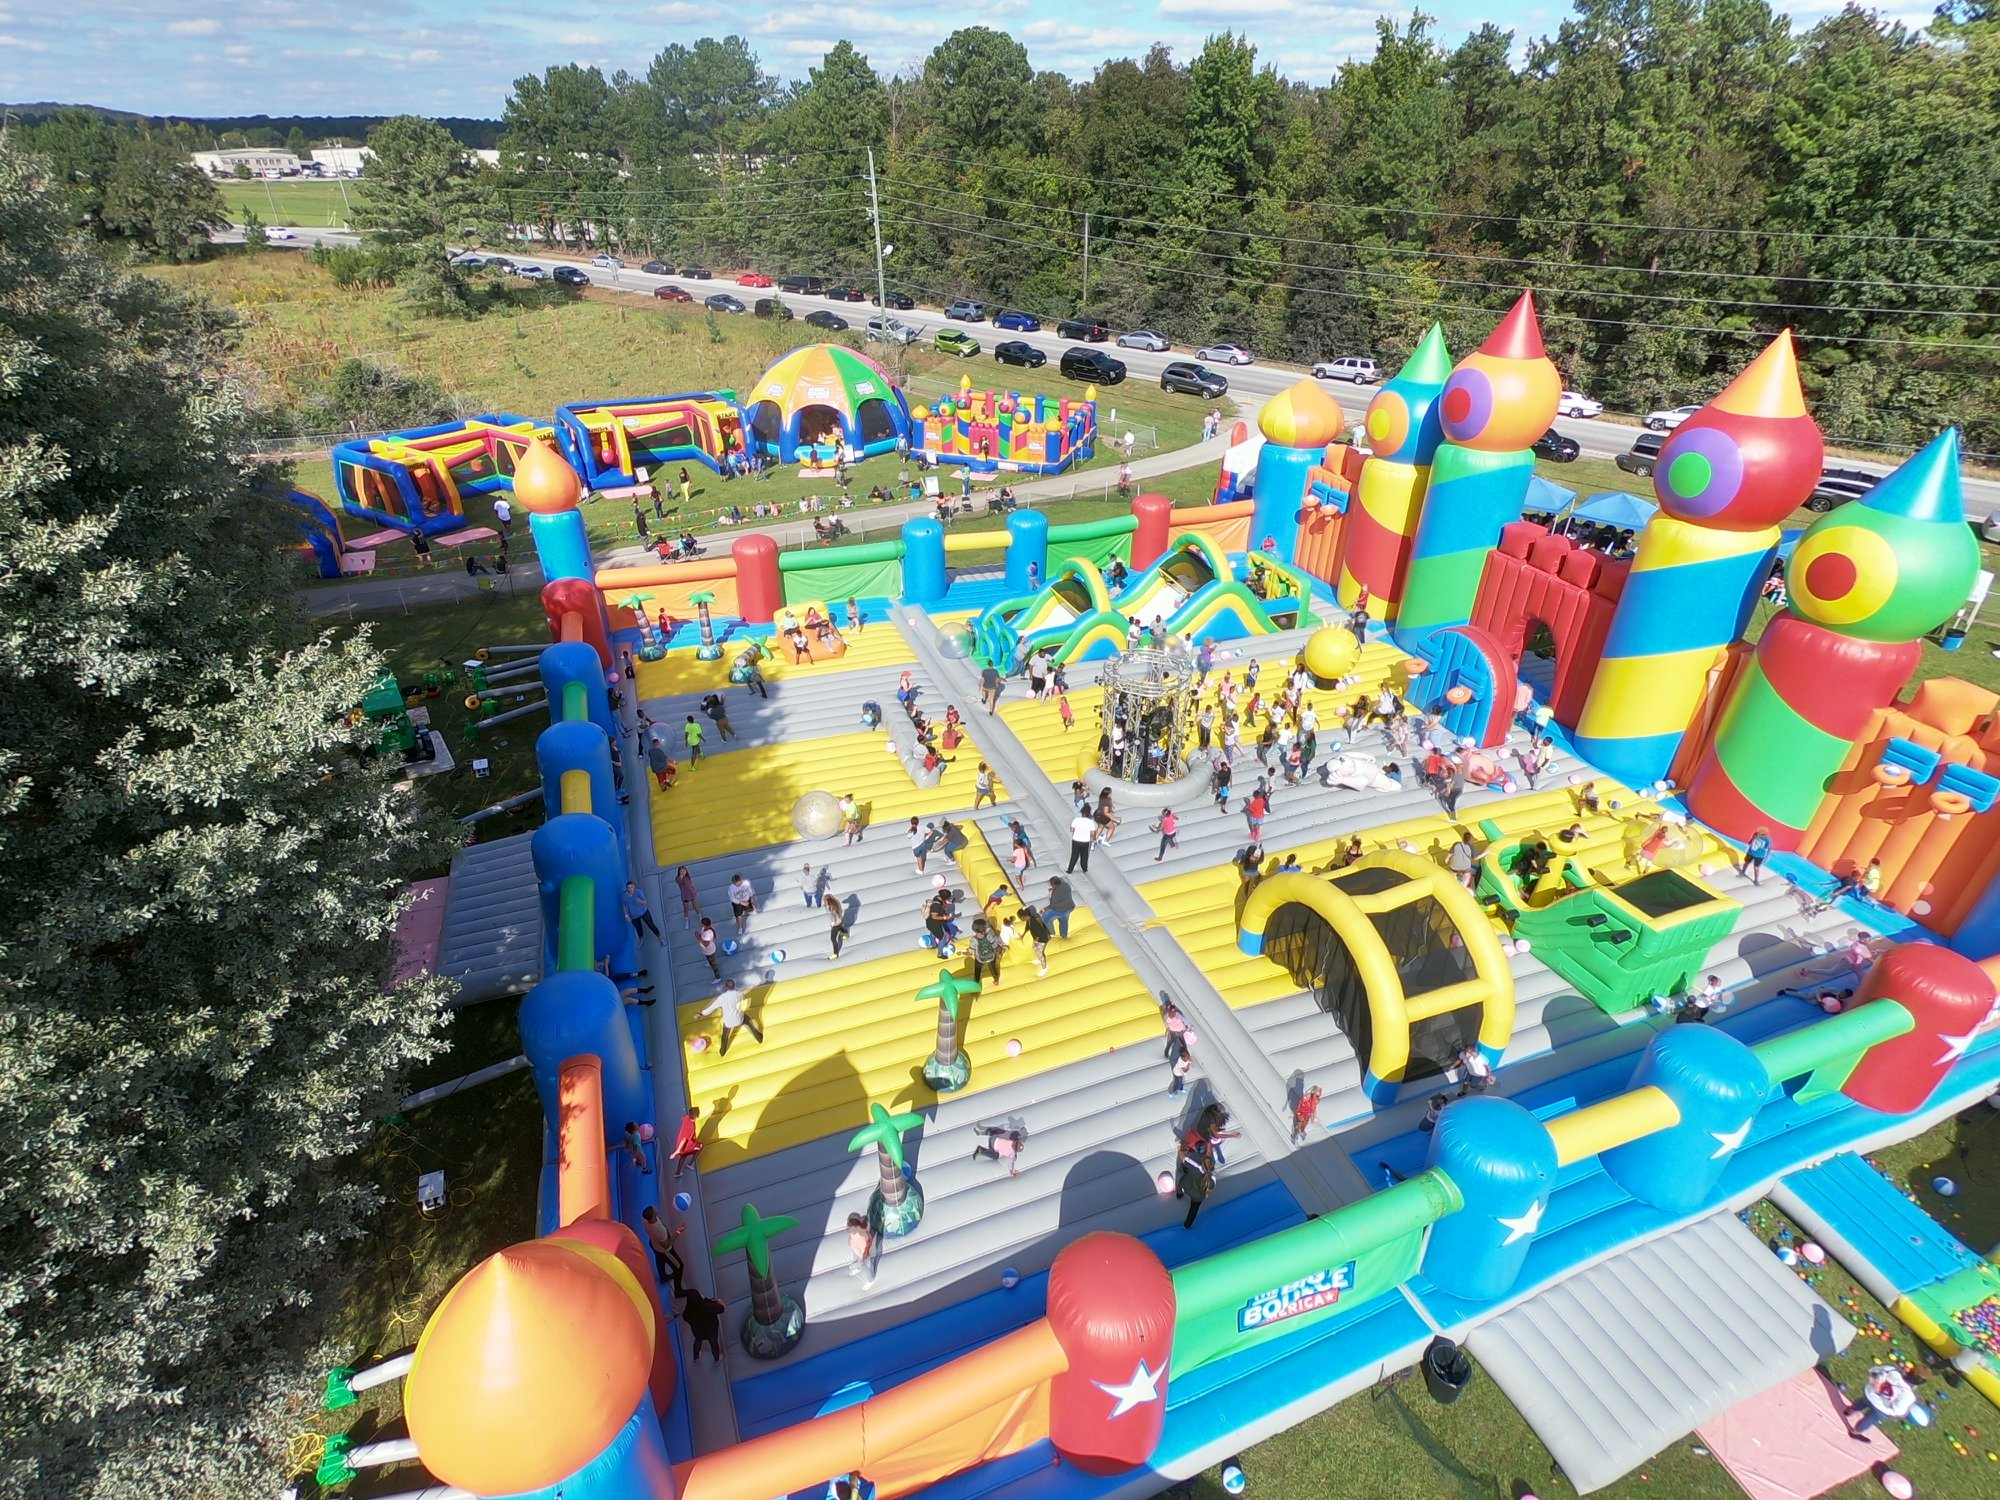 The World S Biggest Bounce House Is A Fun Family Event In